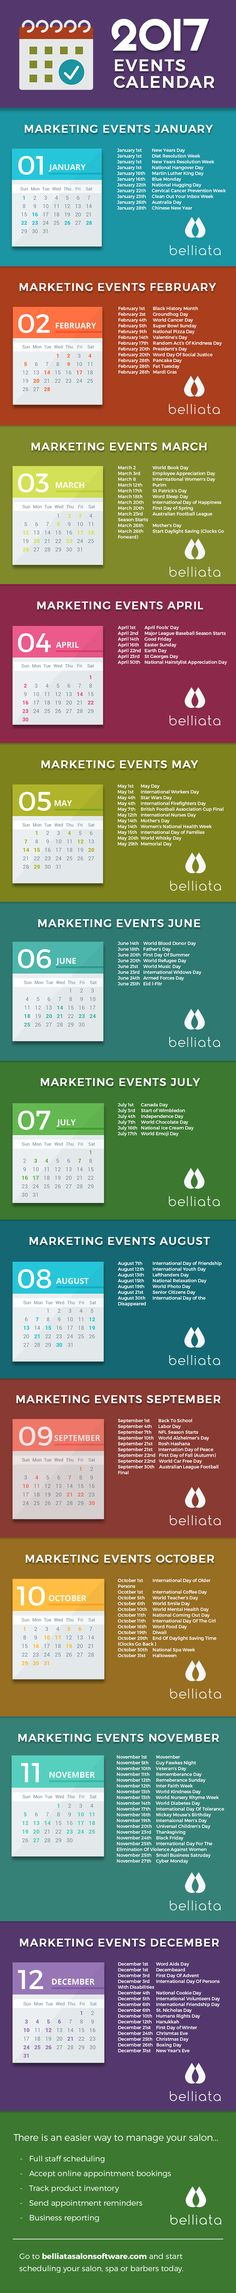 @getbelliata have produced this excellent national days calendar to help you plan lots of great marketing, promotion and social media activity in 2017. Contact us for all your social media and printing needs. www.topclassprinting.com